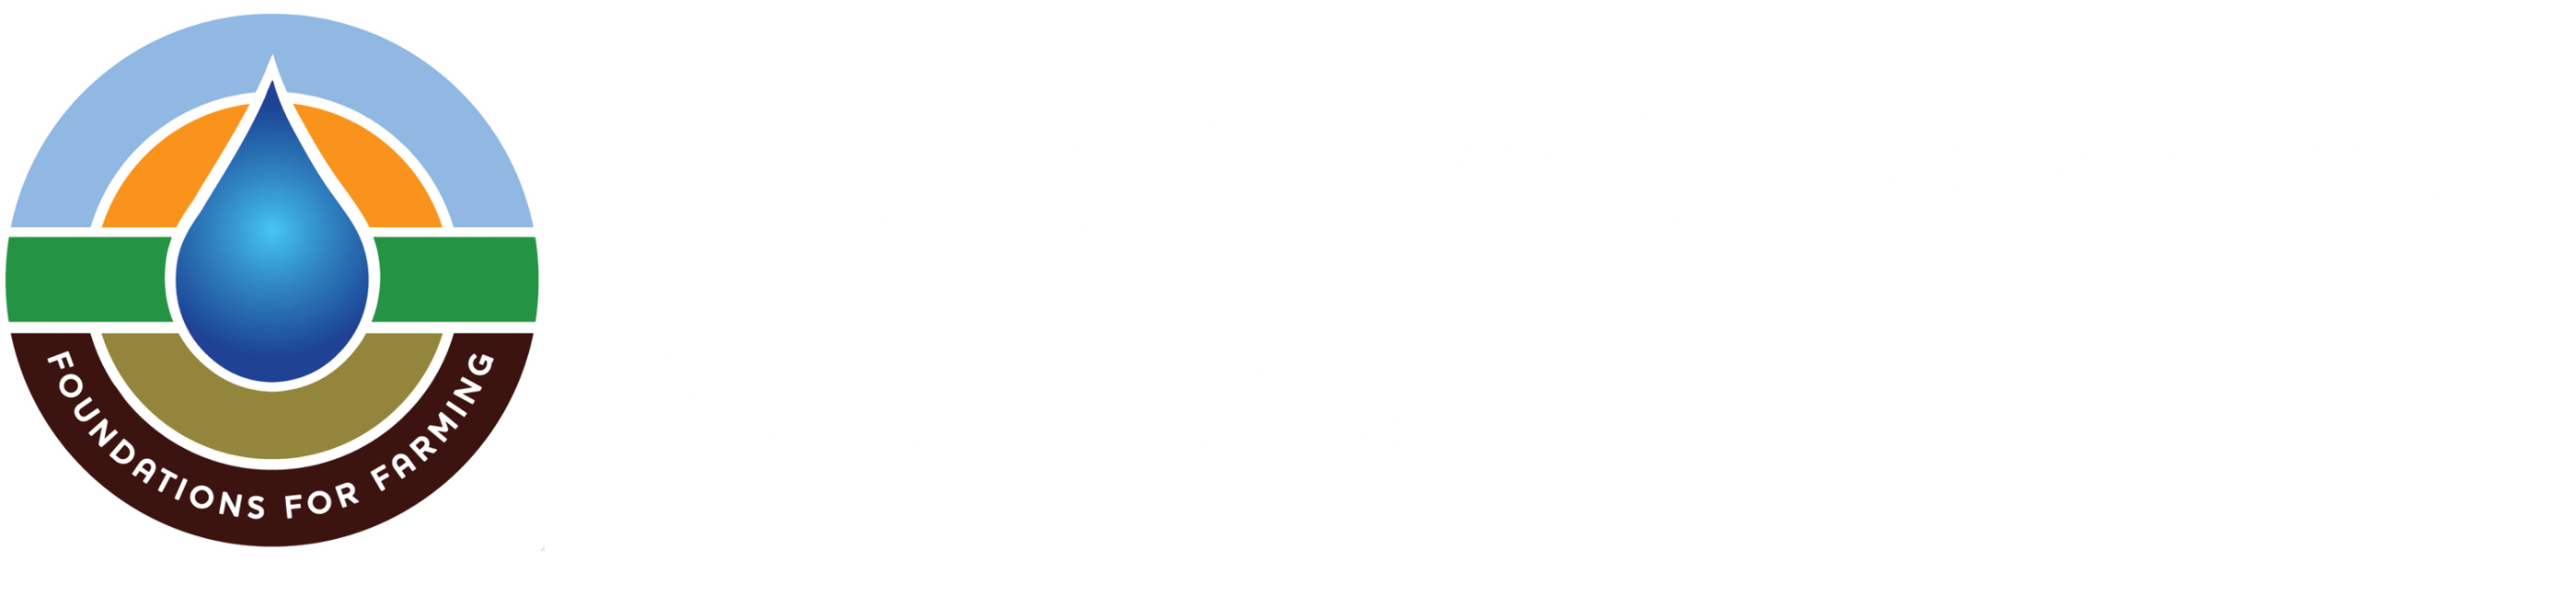 Foundations for Farming Nederland